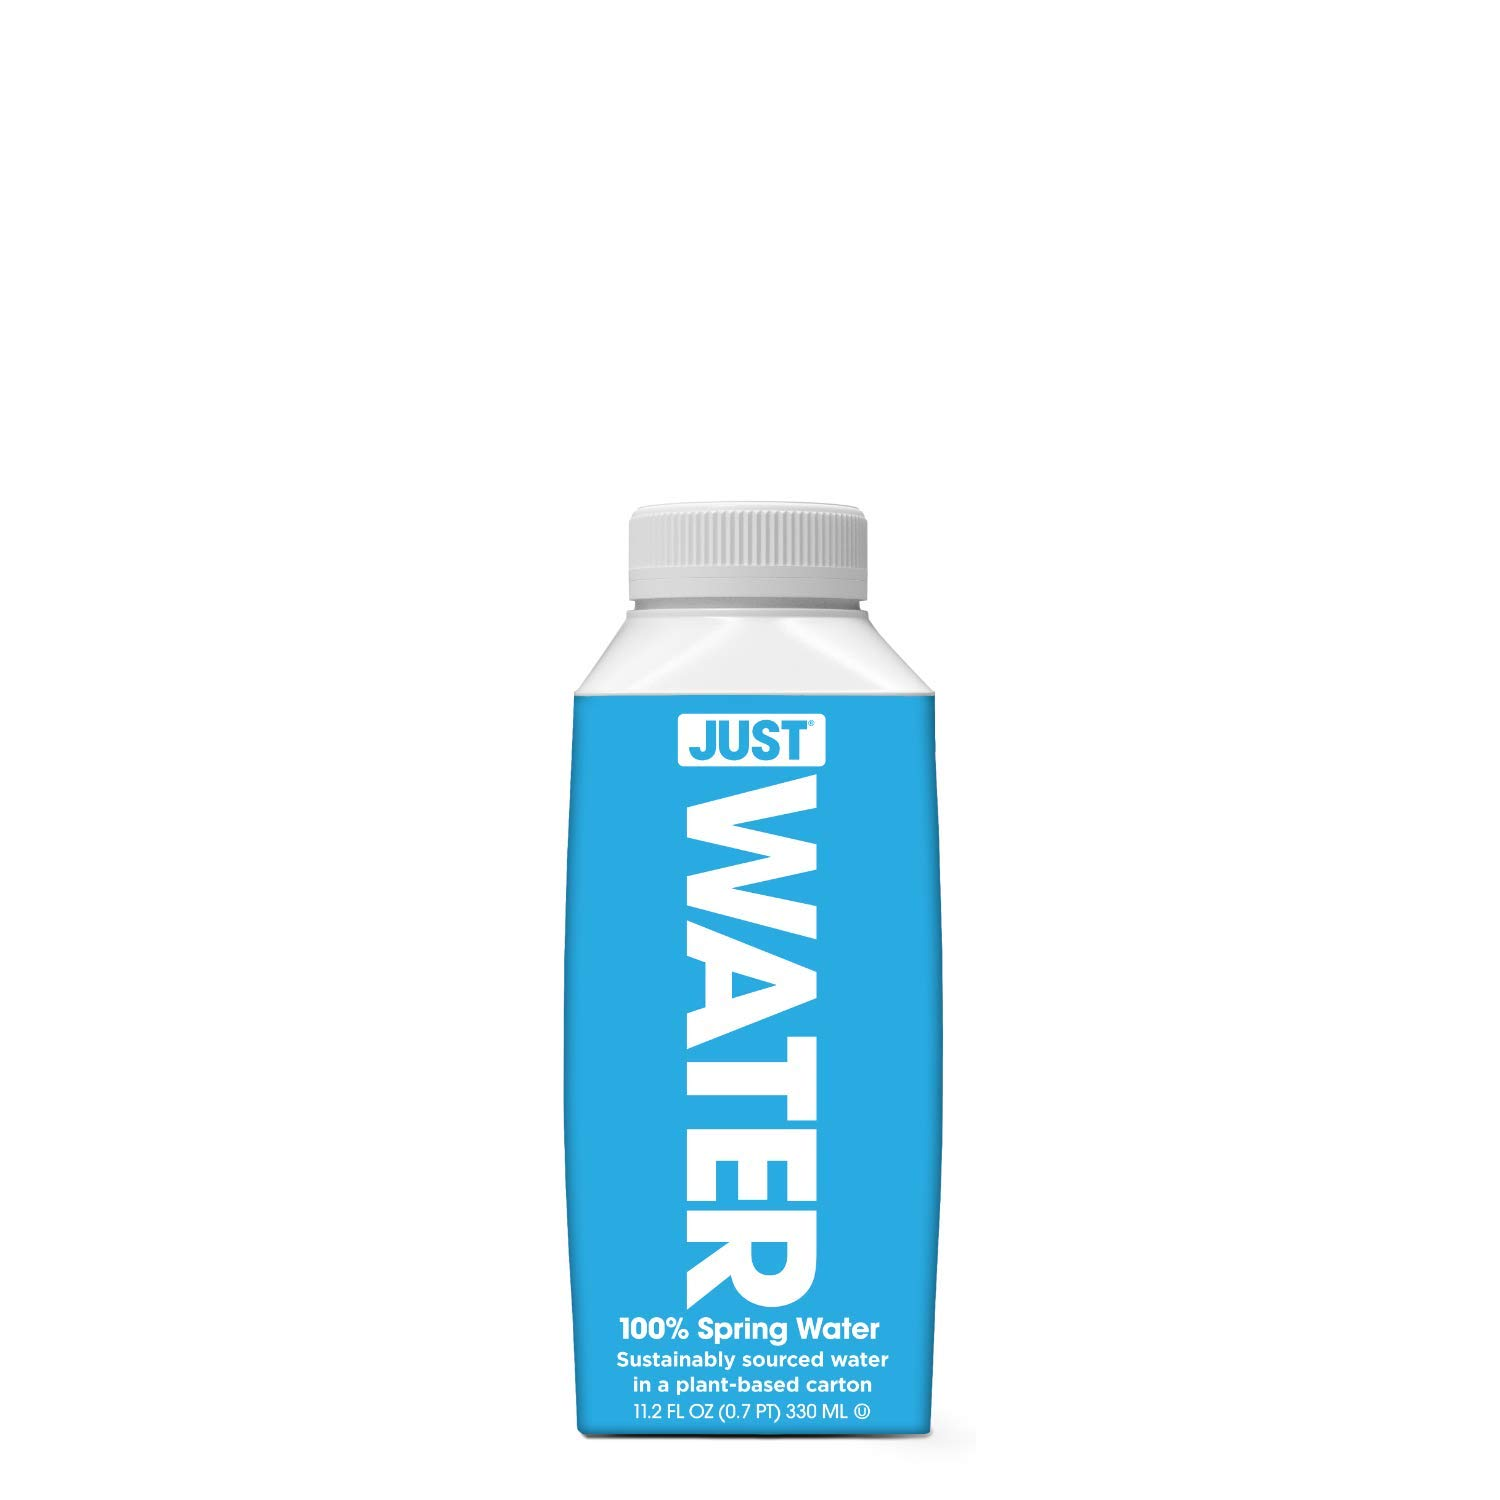 JUST Water, Premium Pure Still Spring Water in an Eco-Friendly BPA Free Plant-Based Bottle | Naturally Alkaline, High 8.0 pH | Fully Recyclable Boxed Water Carton, 11.2 Fluid Ounces (Pack of 24)